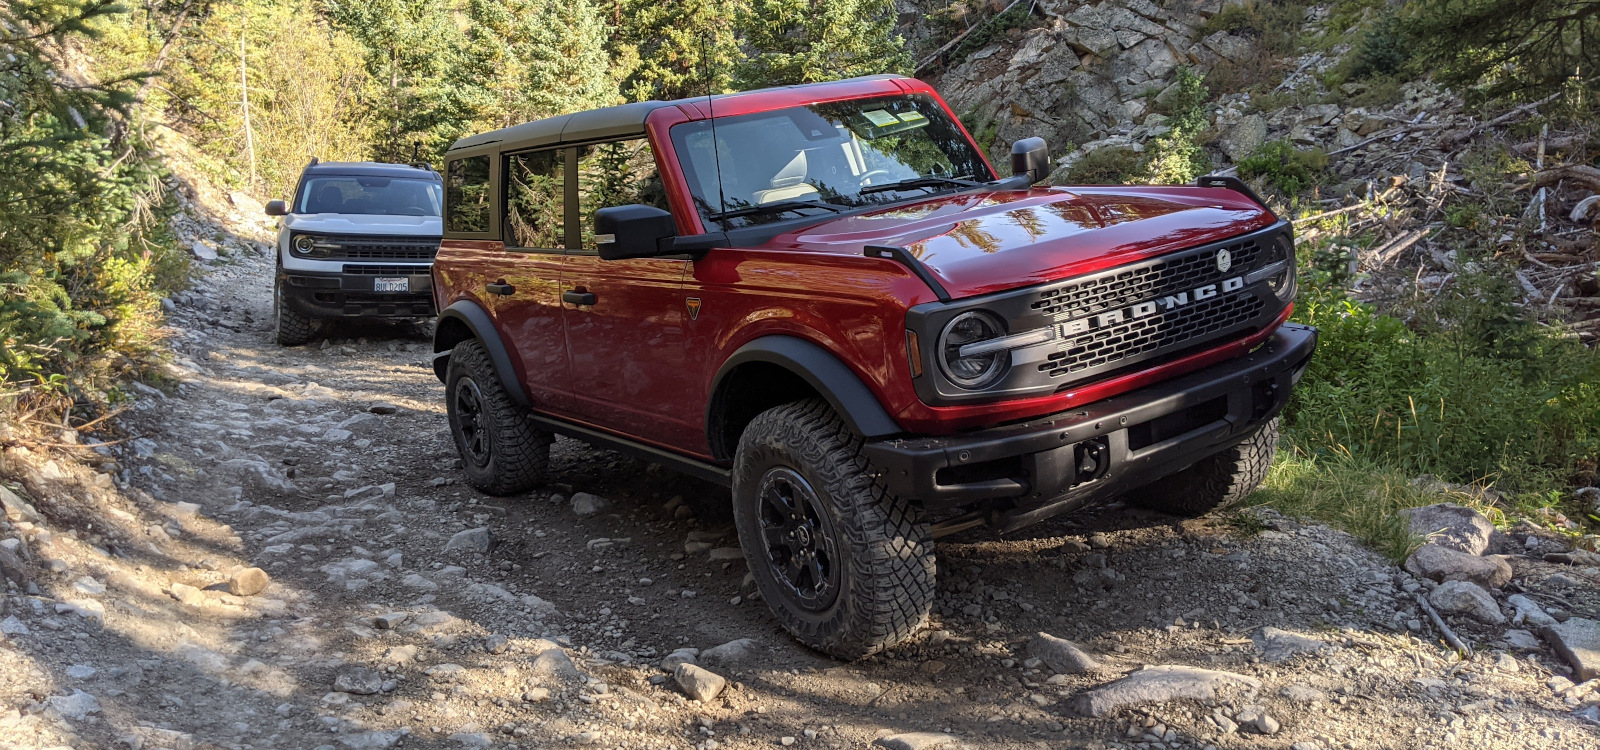 Will It Make It? Baldwin Lakes in a 2021 Ford Bronco Video